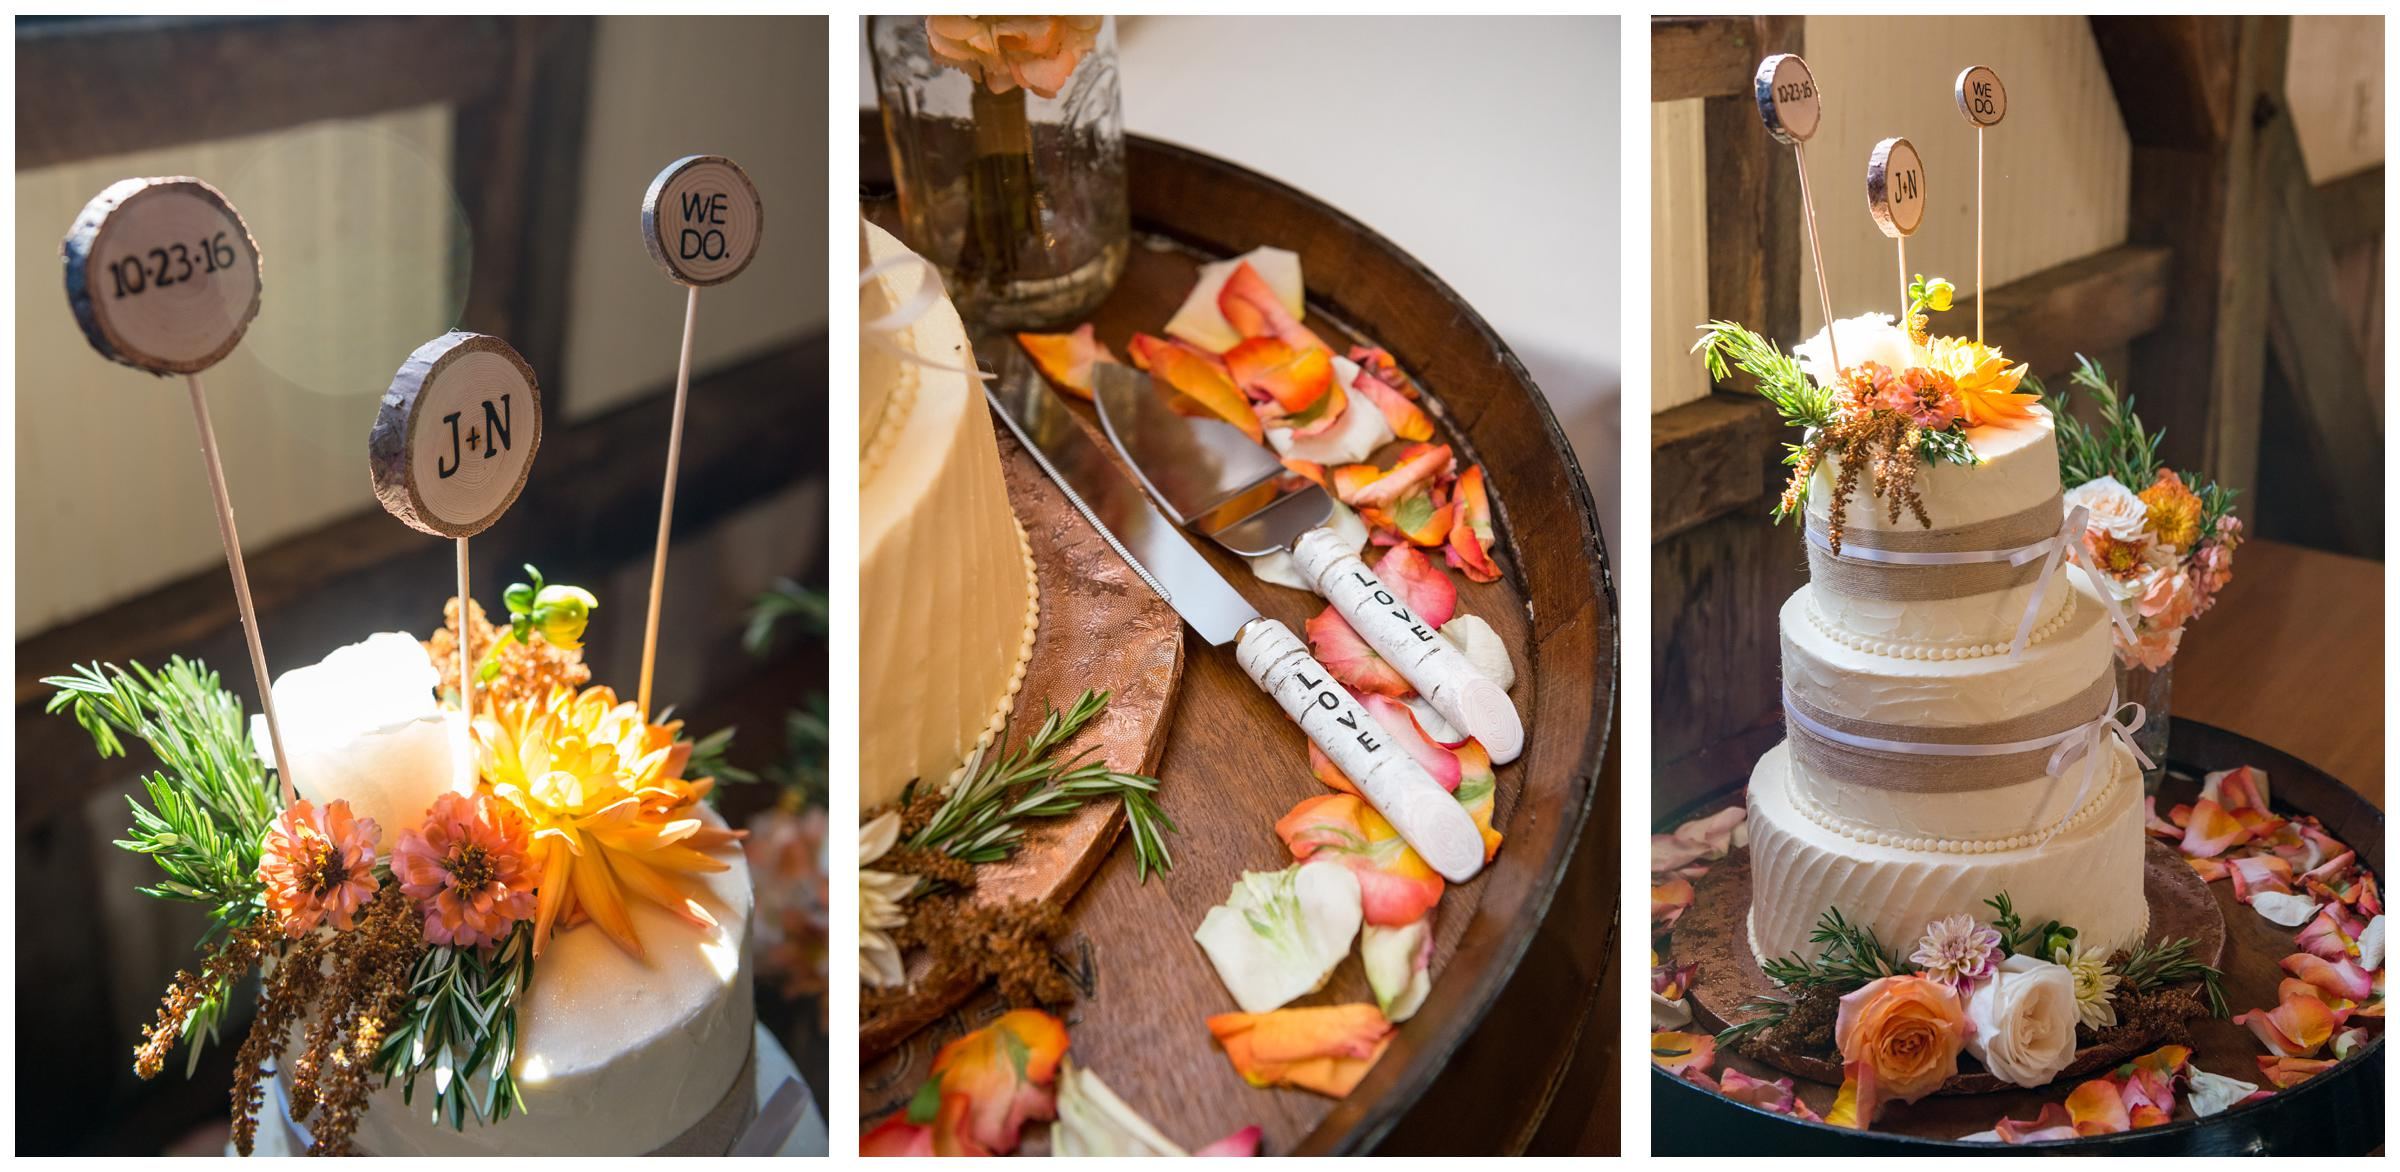 Rustic cake on barrel table with wooden topper and cake cutter.